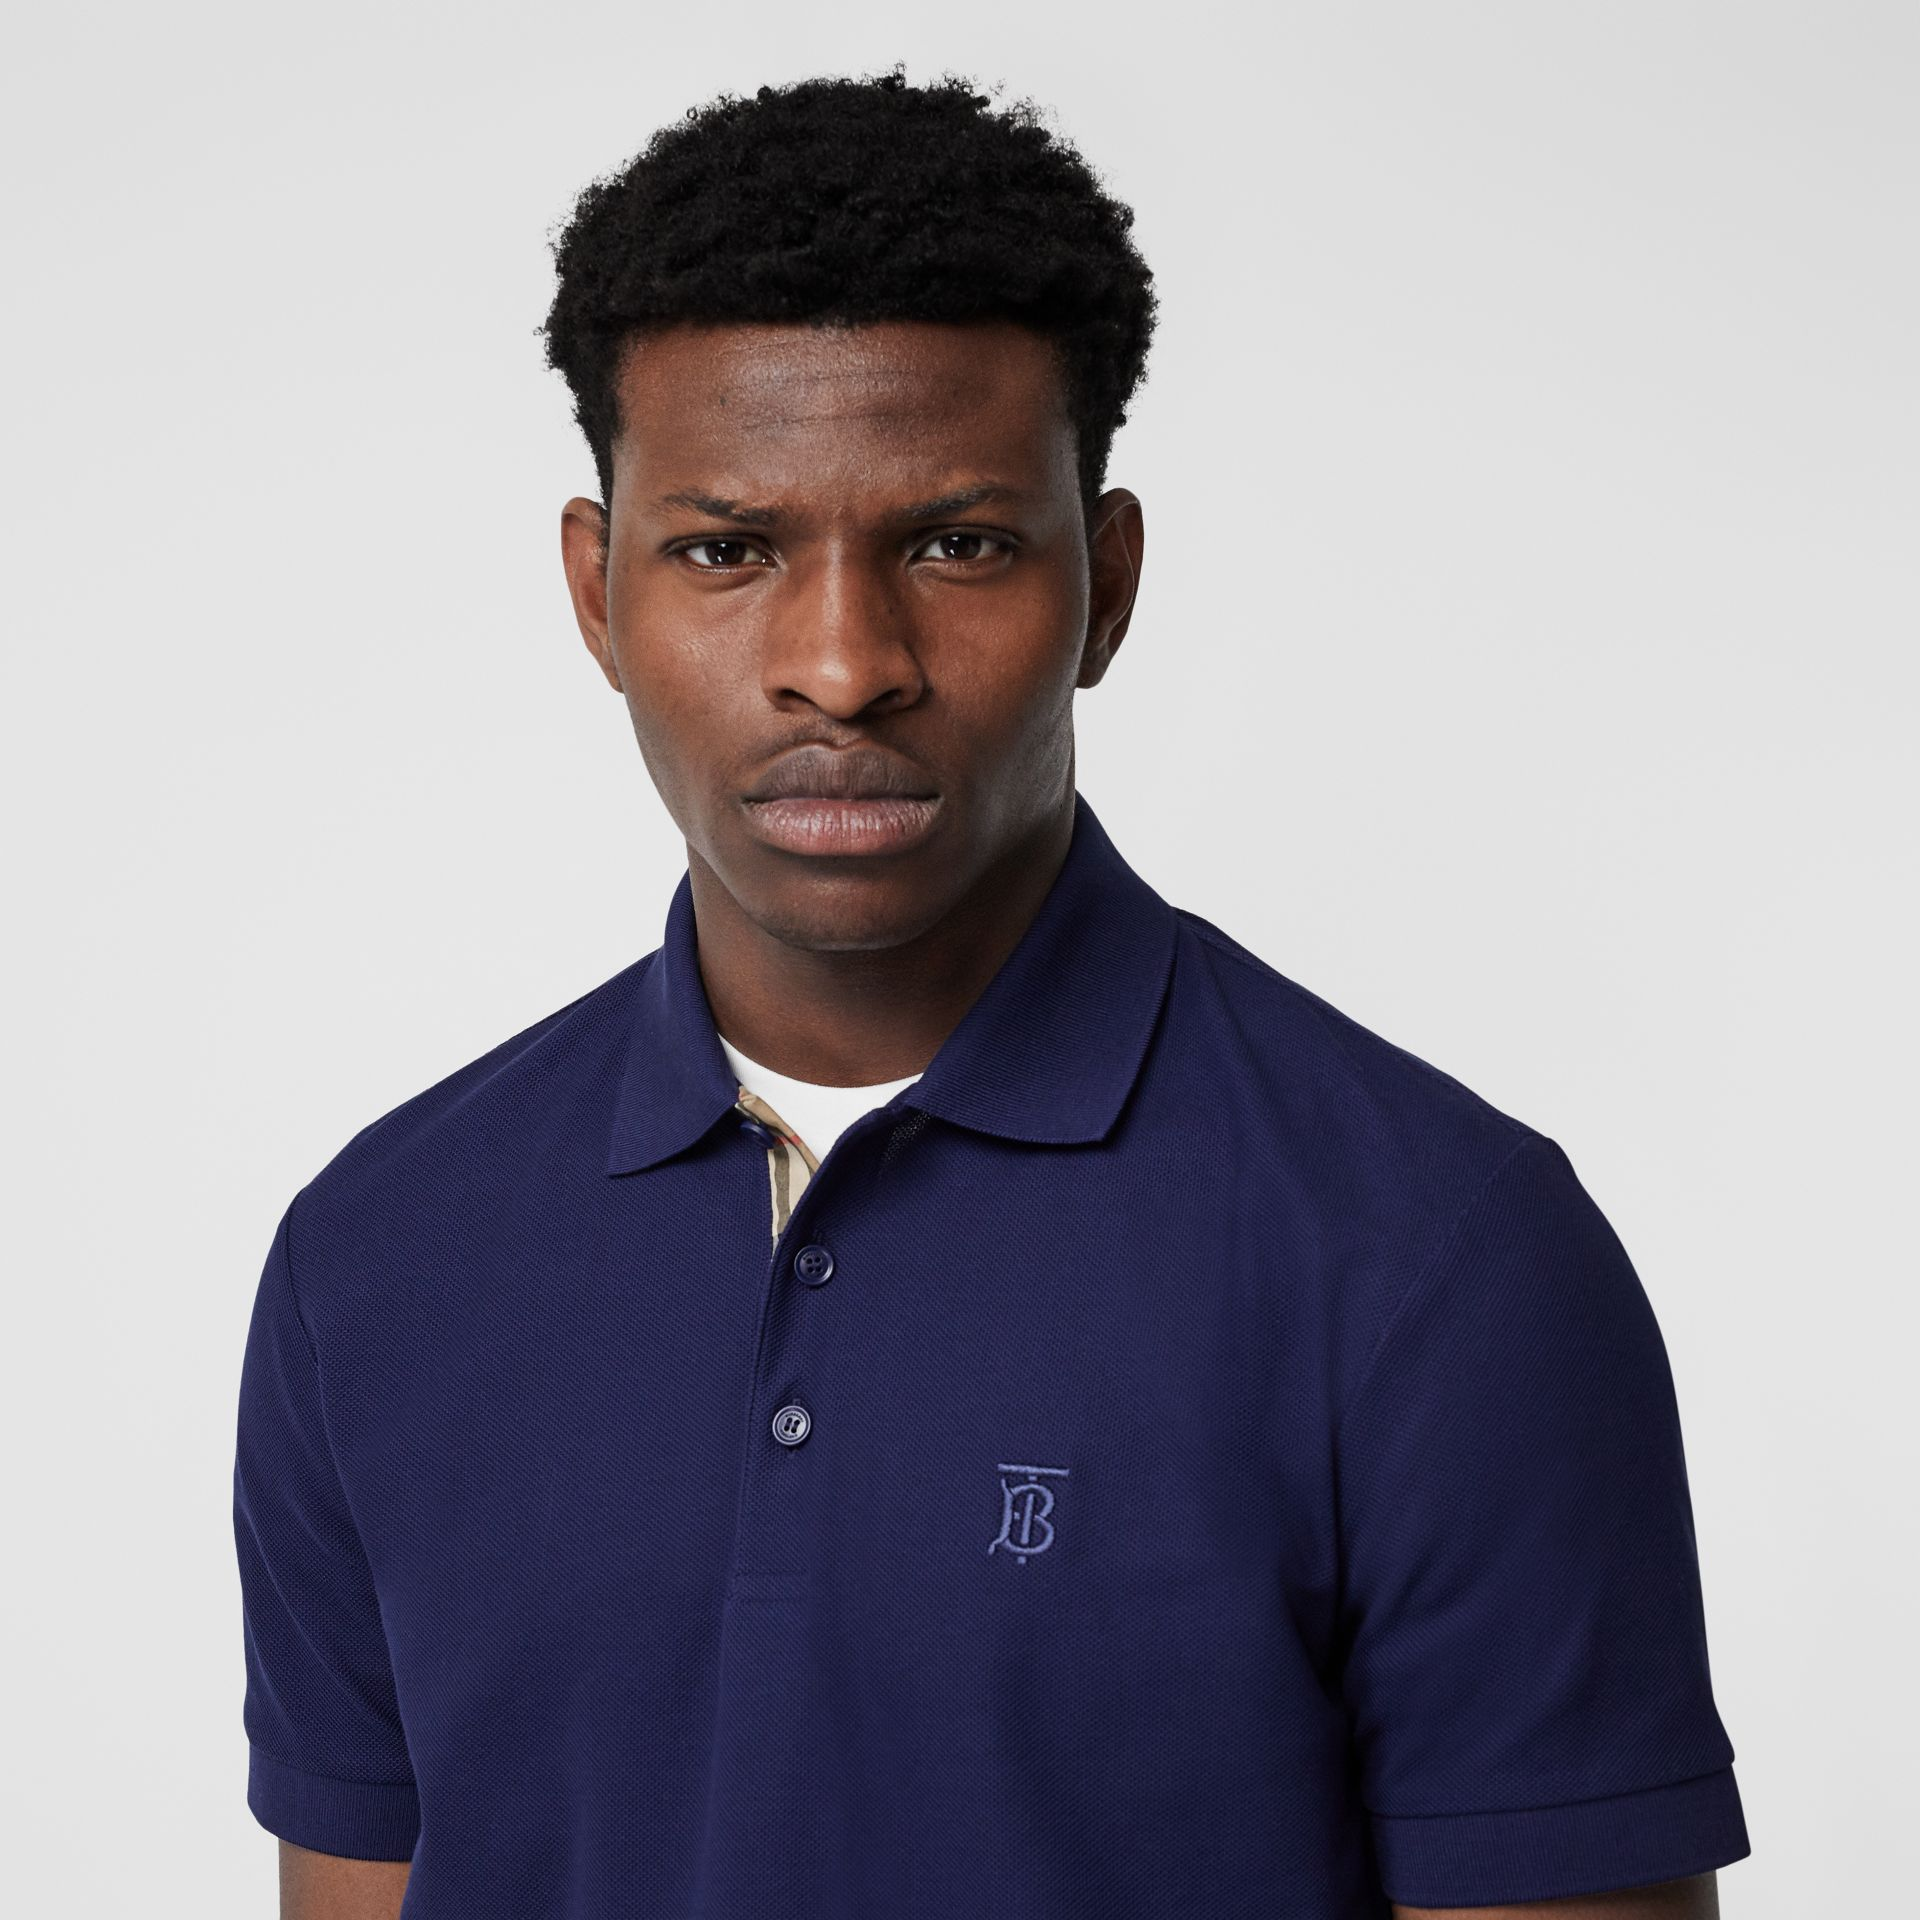 Monogram Motif Cotton Piqué Polo Shirt in Indigo - Men | Burberry - gallery image 1